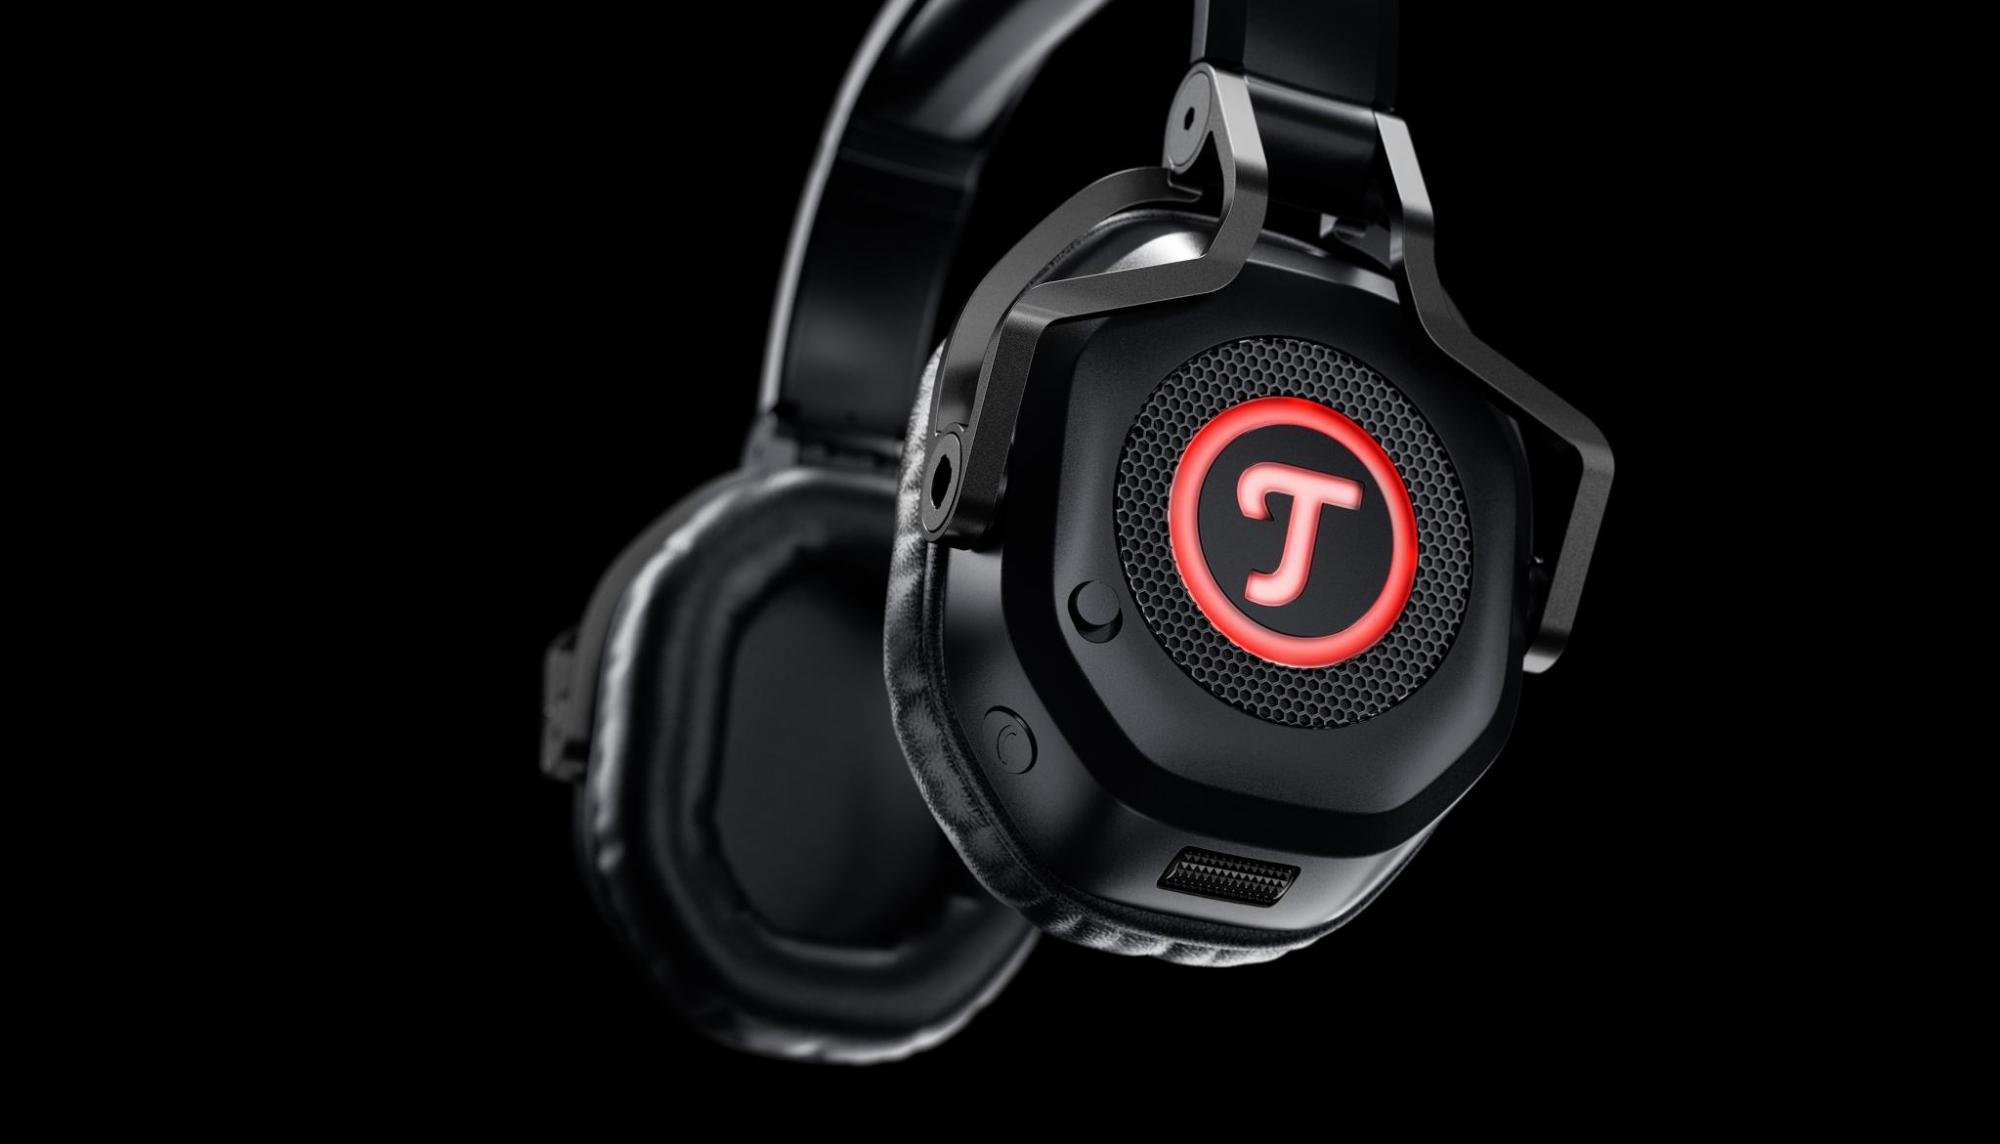 Tv Sessel Test Teufel Cage – Gaming Headset Von Teufel » Technikblog.net